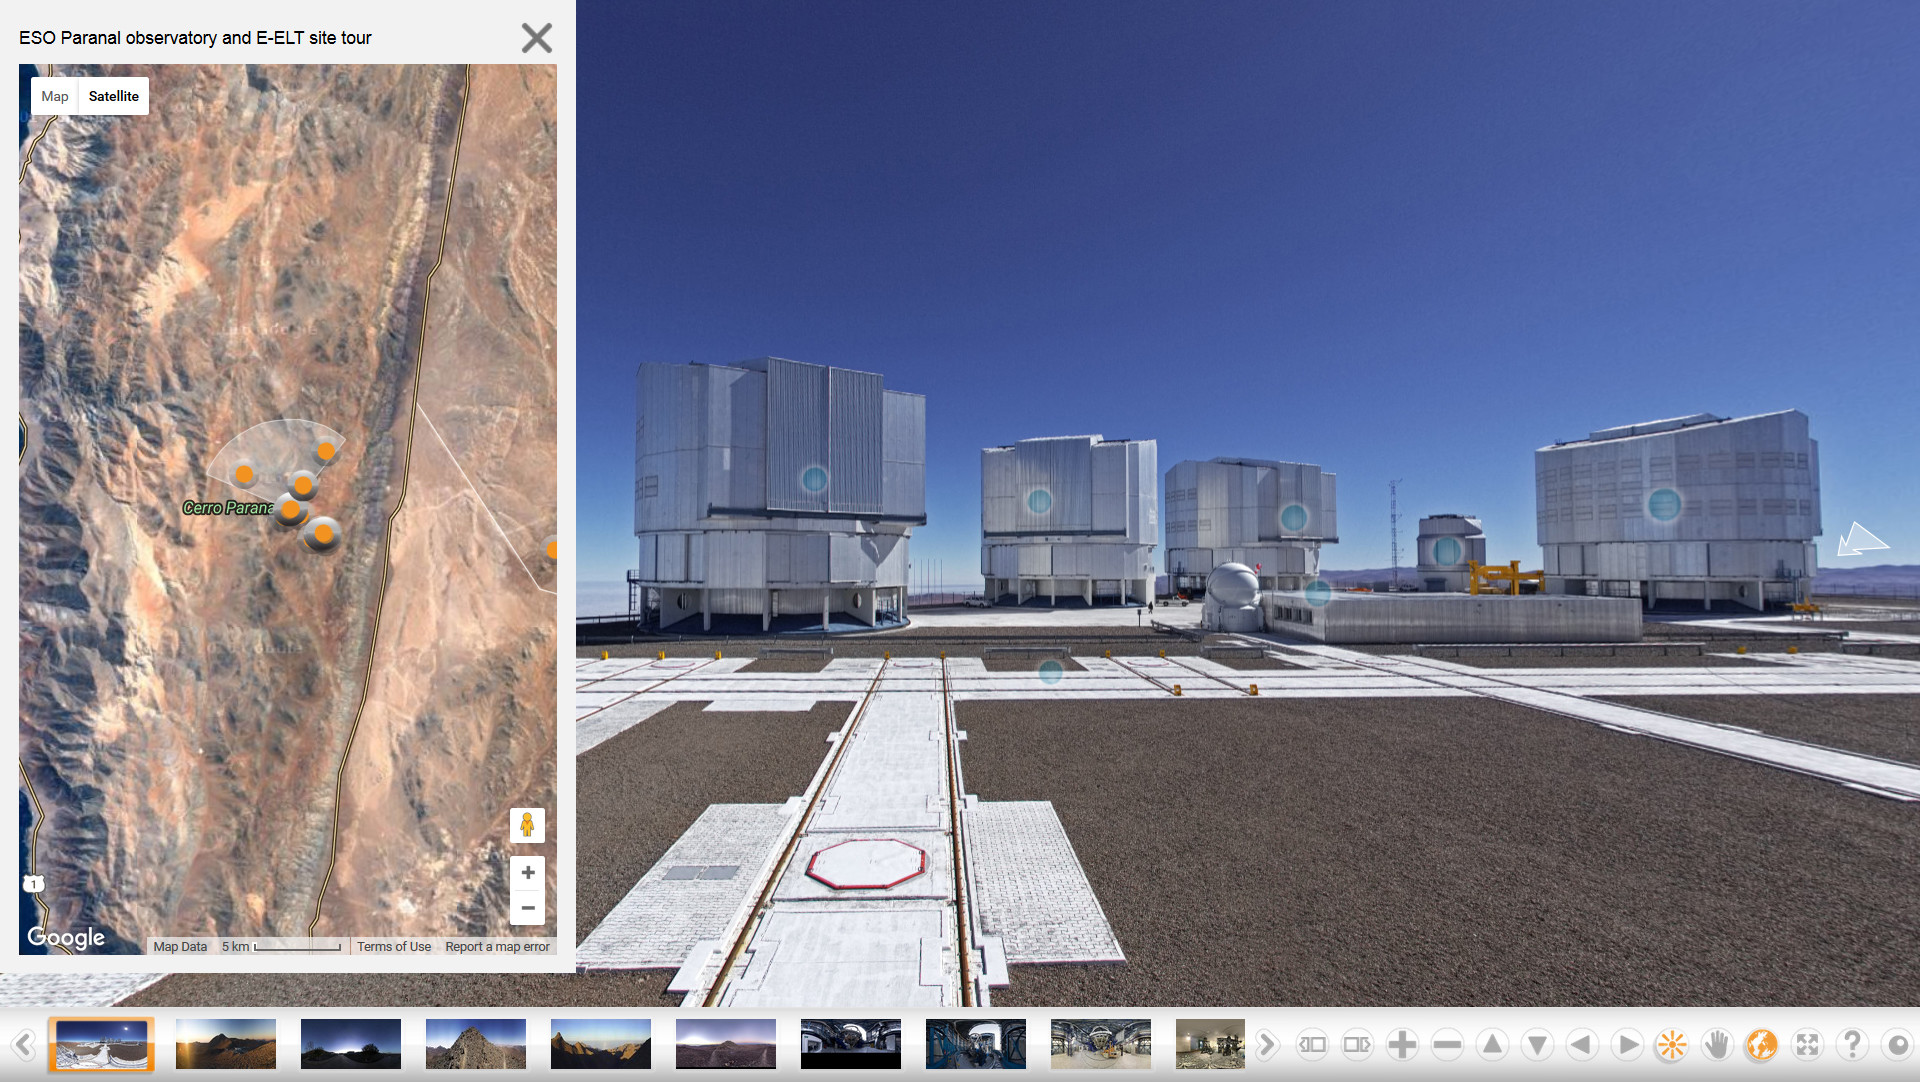 Weekend Visits To Paranal Eso